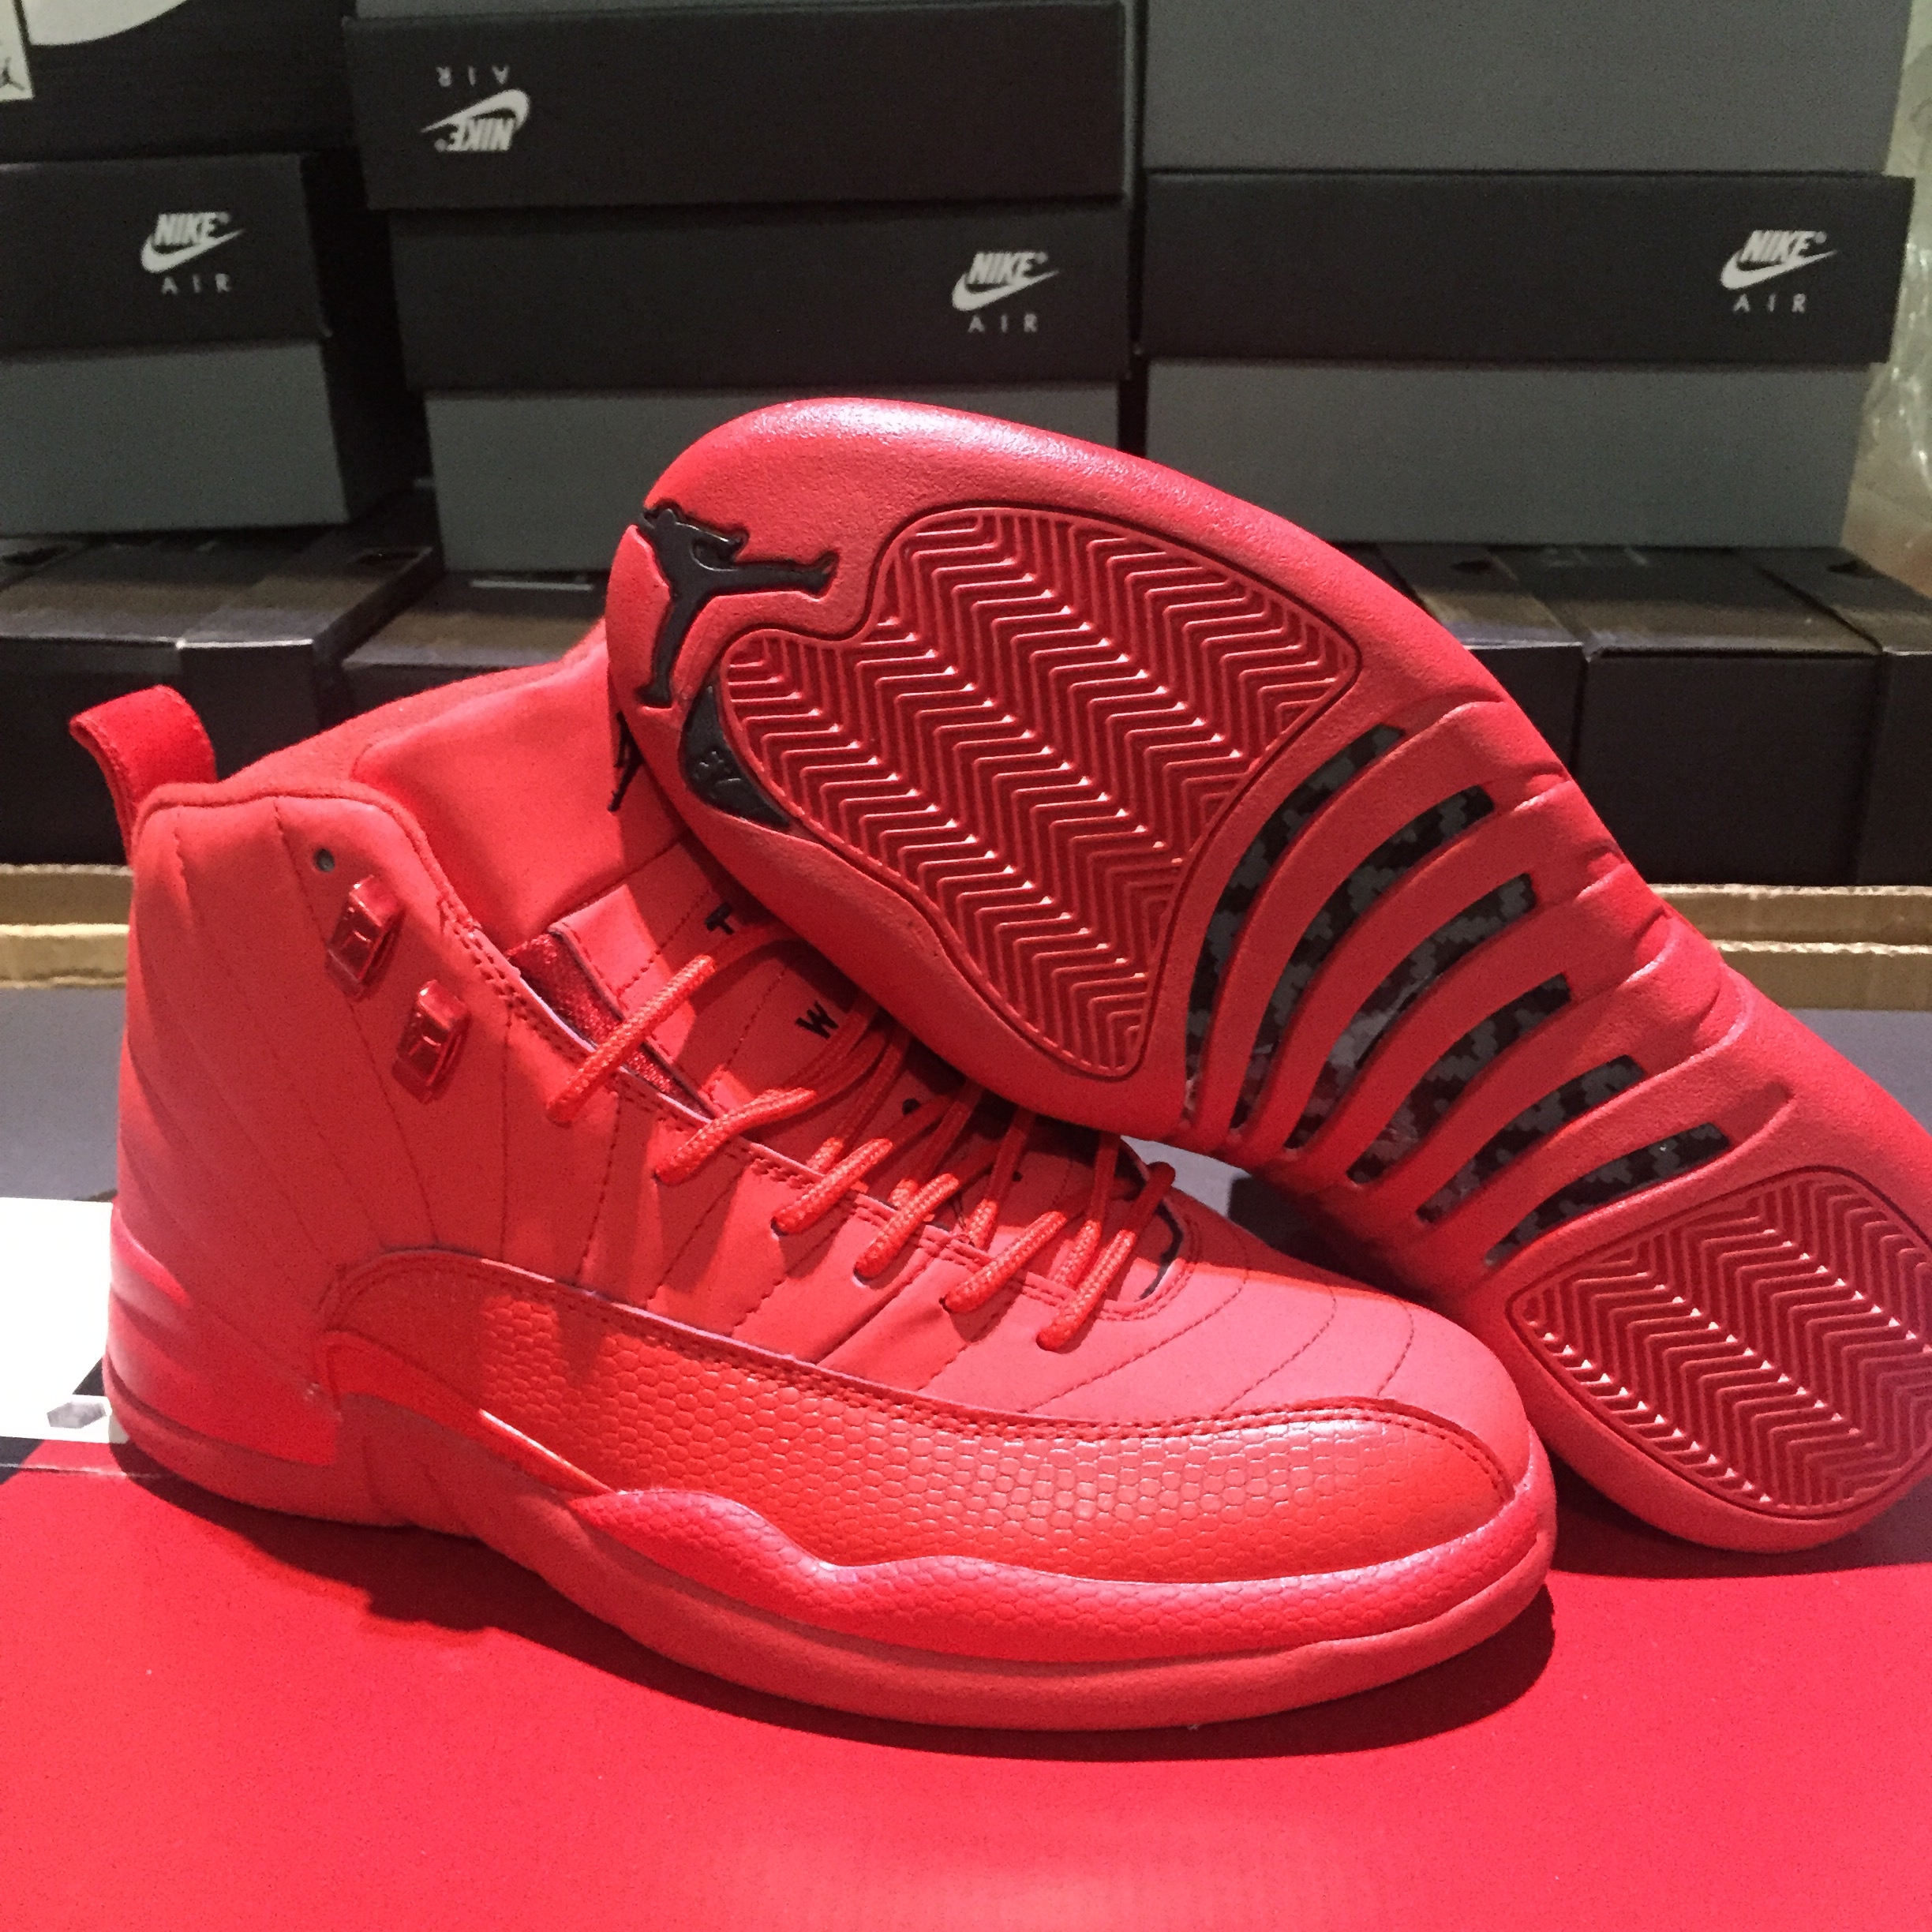 2018 Air Jordan 12 All Red Shoes